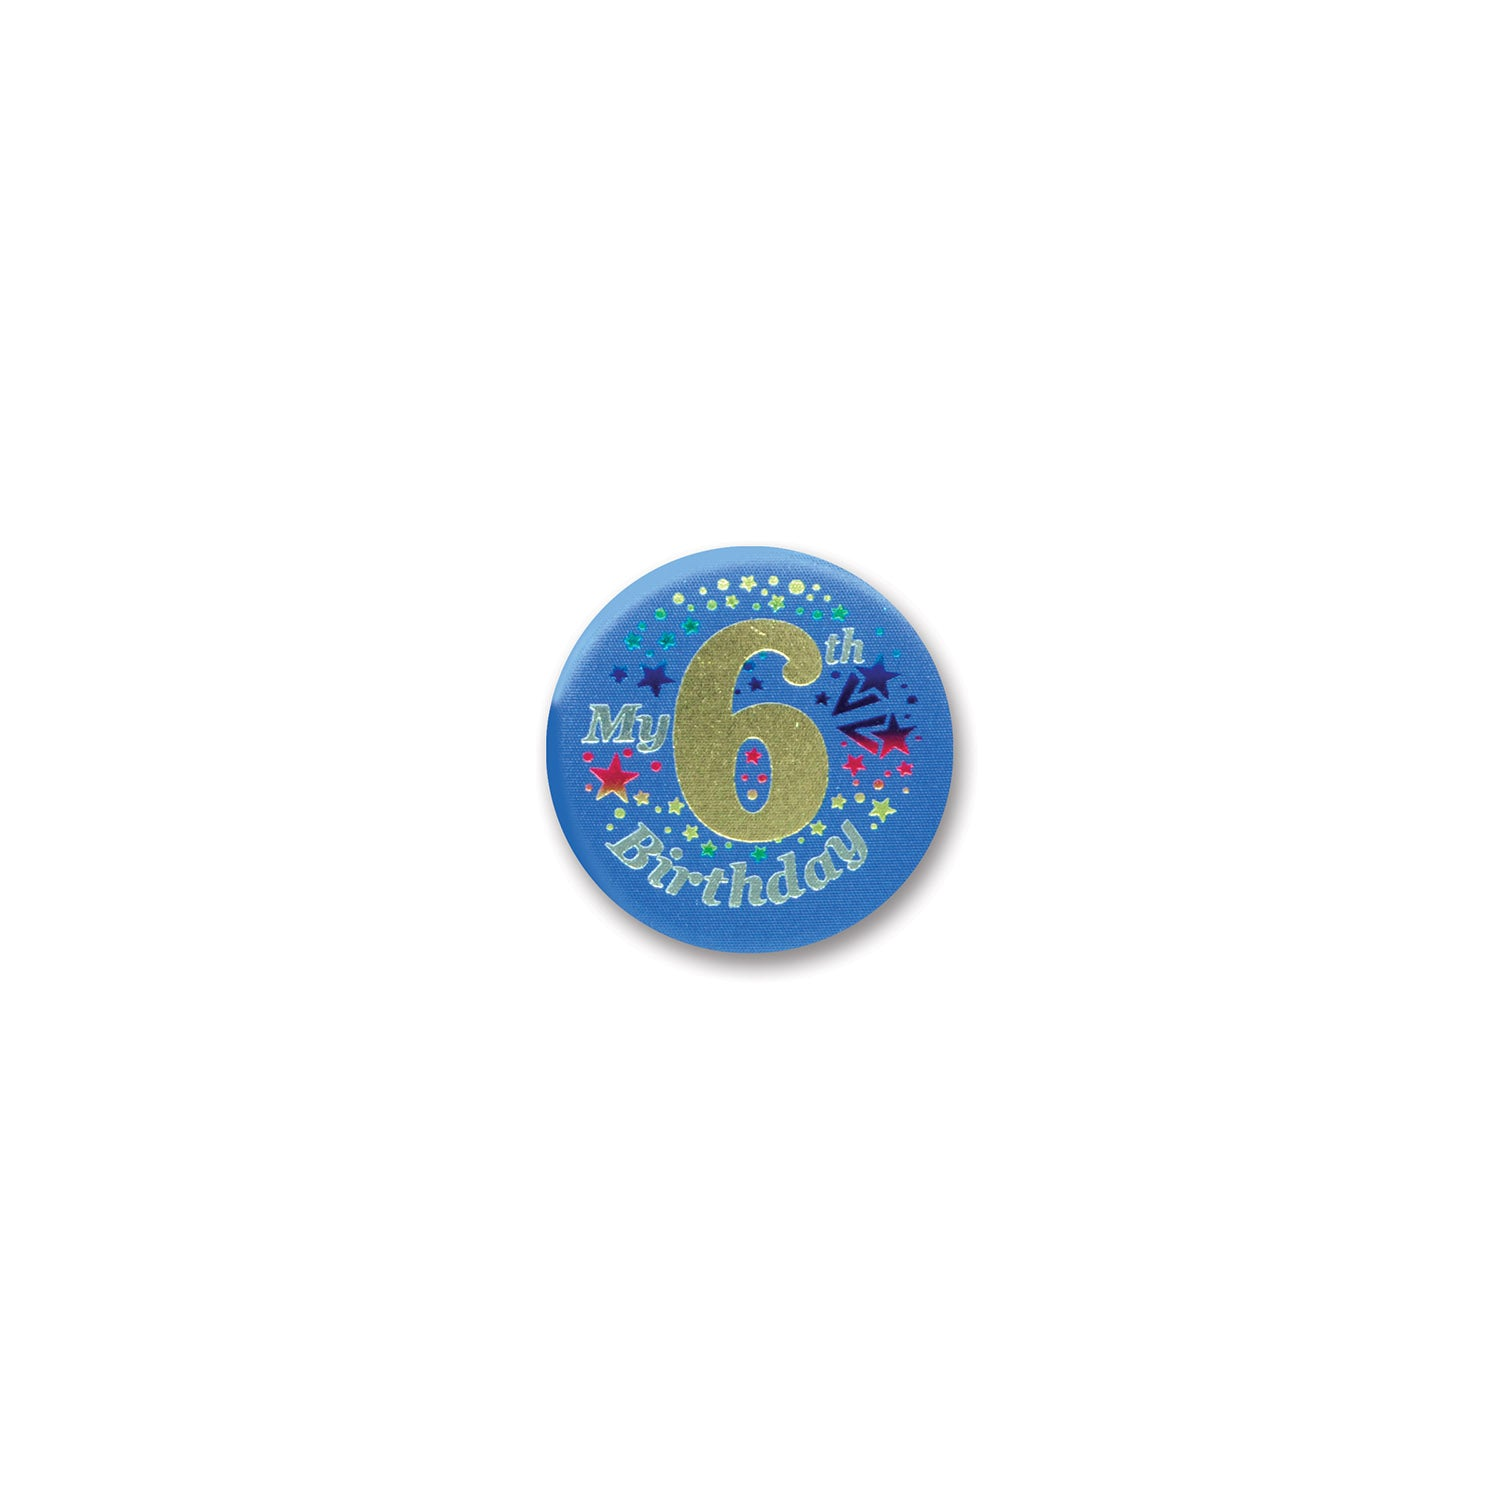 My 6th Birthday Satin Button by Beistle - 6th Birthday Party Decorations